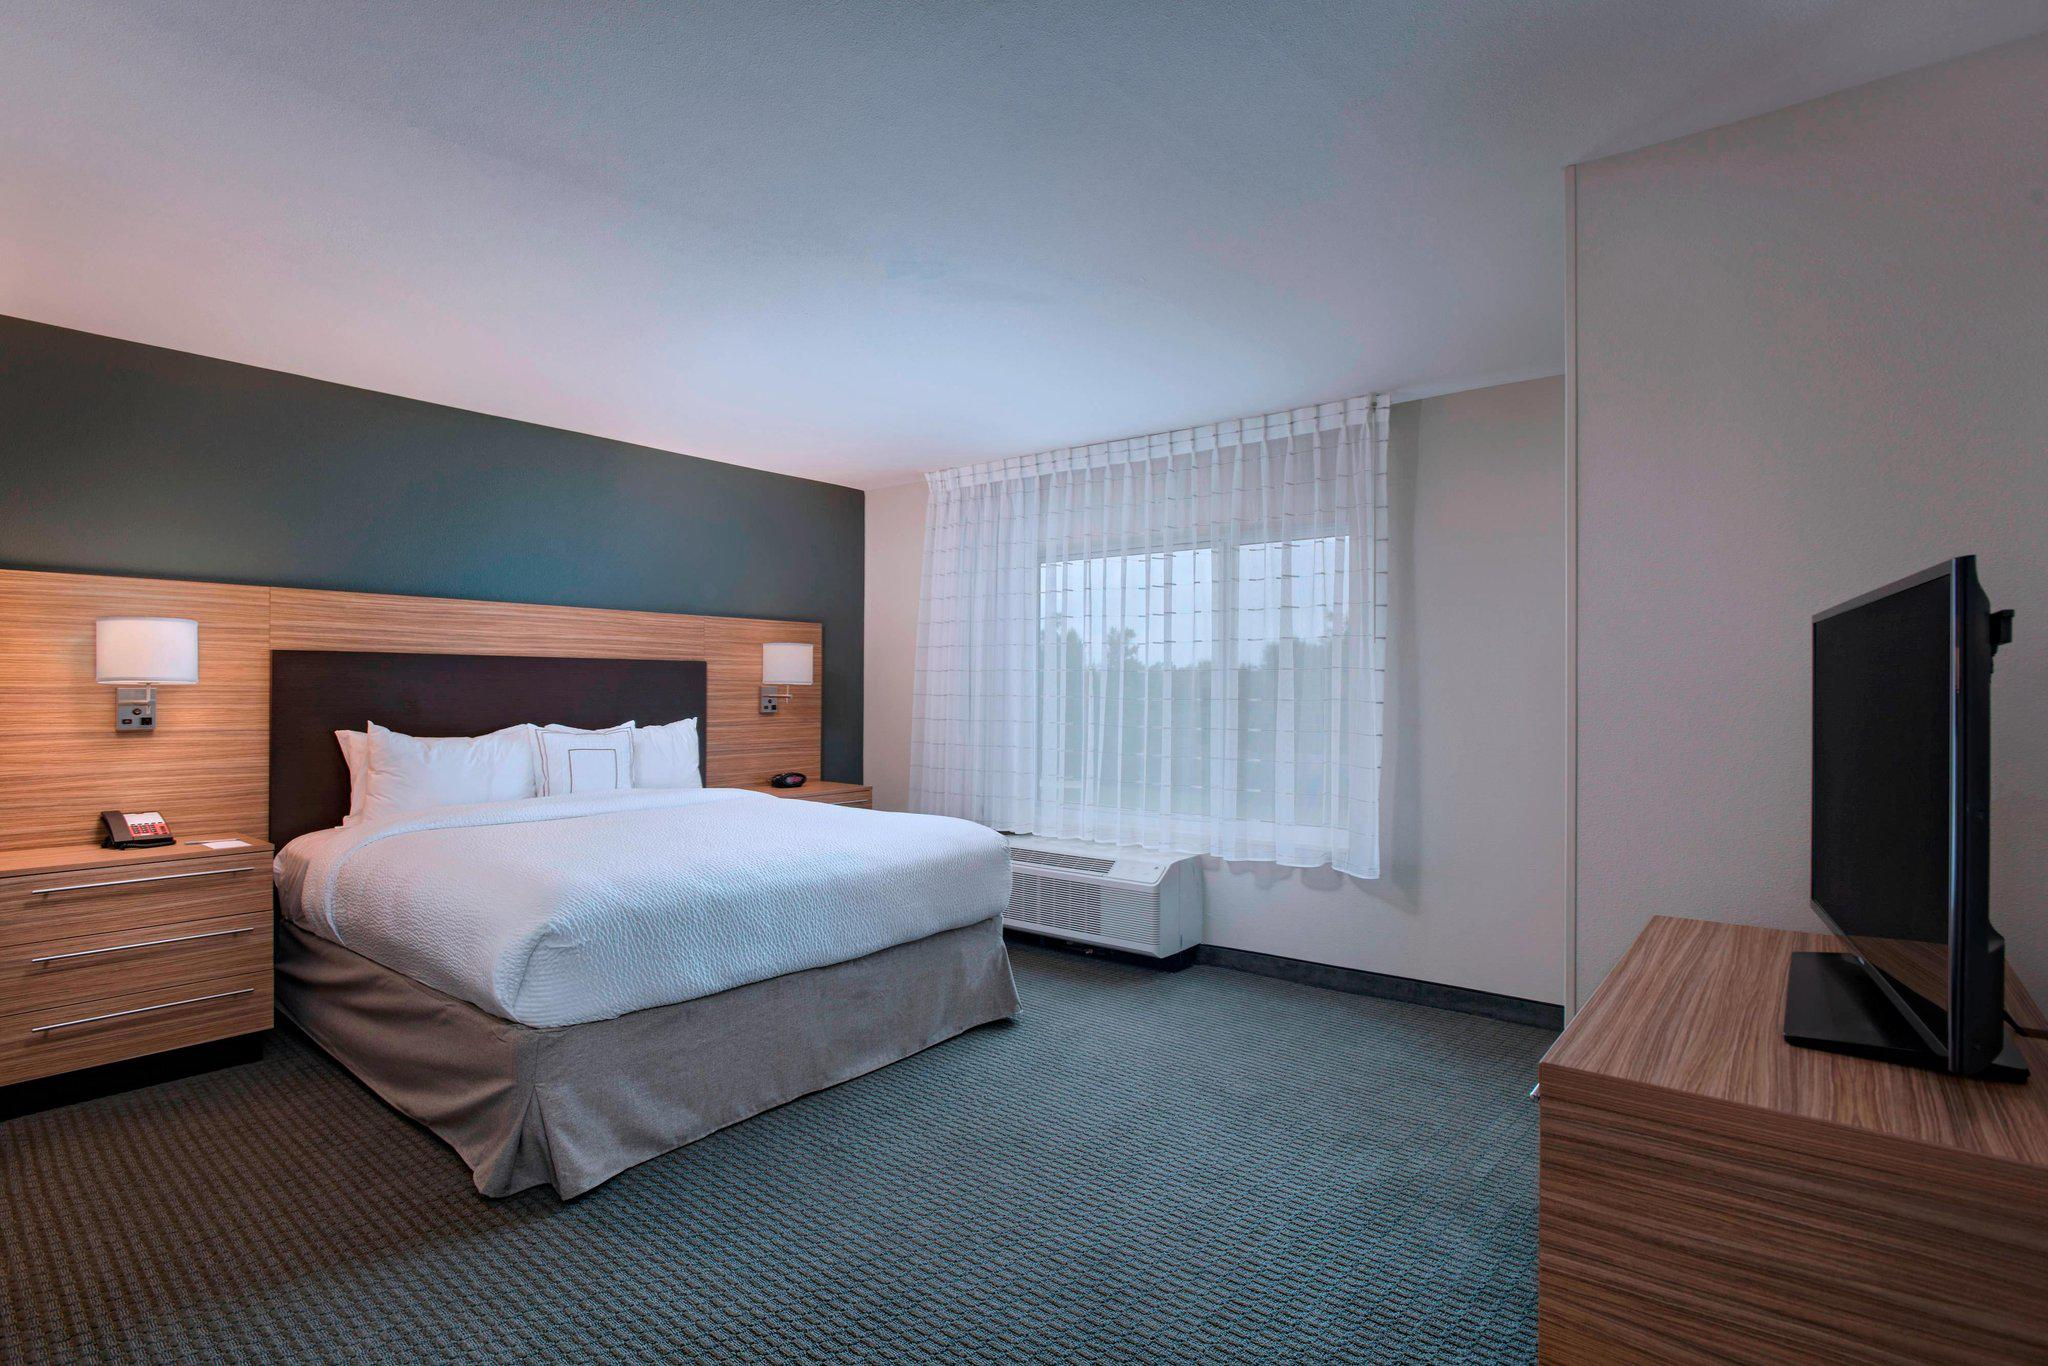 TownePlace Suites by Marriott Lake Charles